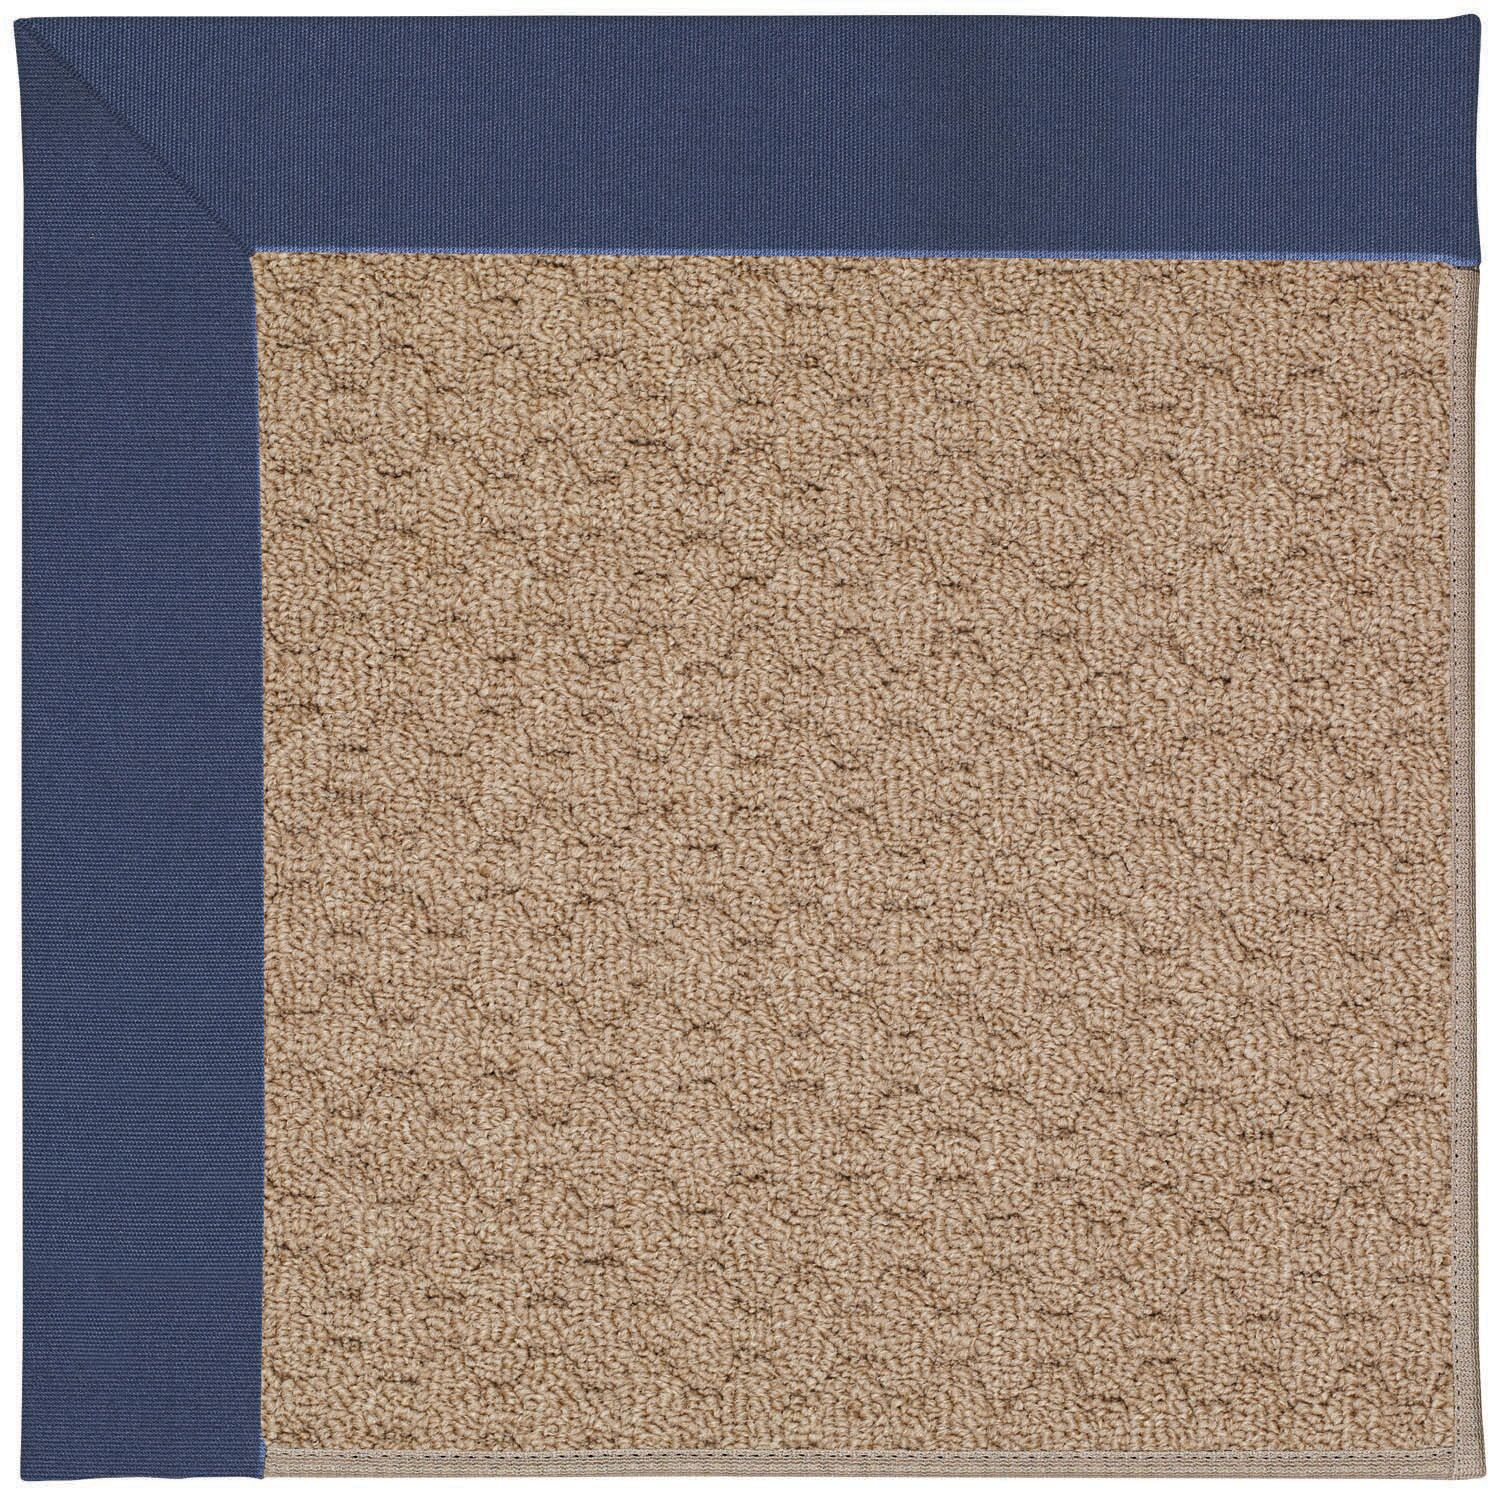 Lisle Machine Tufted Blue/Brown Indoor/Outdoor Area Rug Rug Size: Square 6'